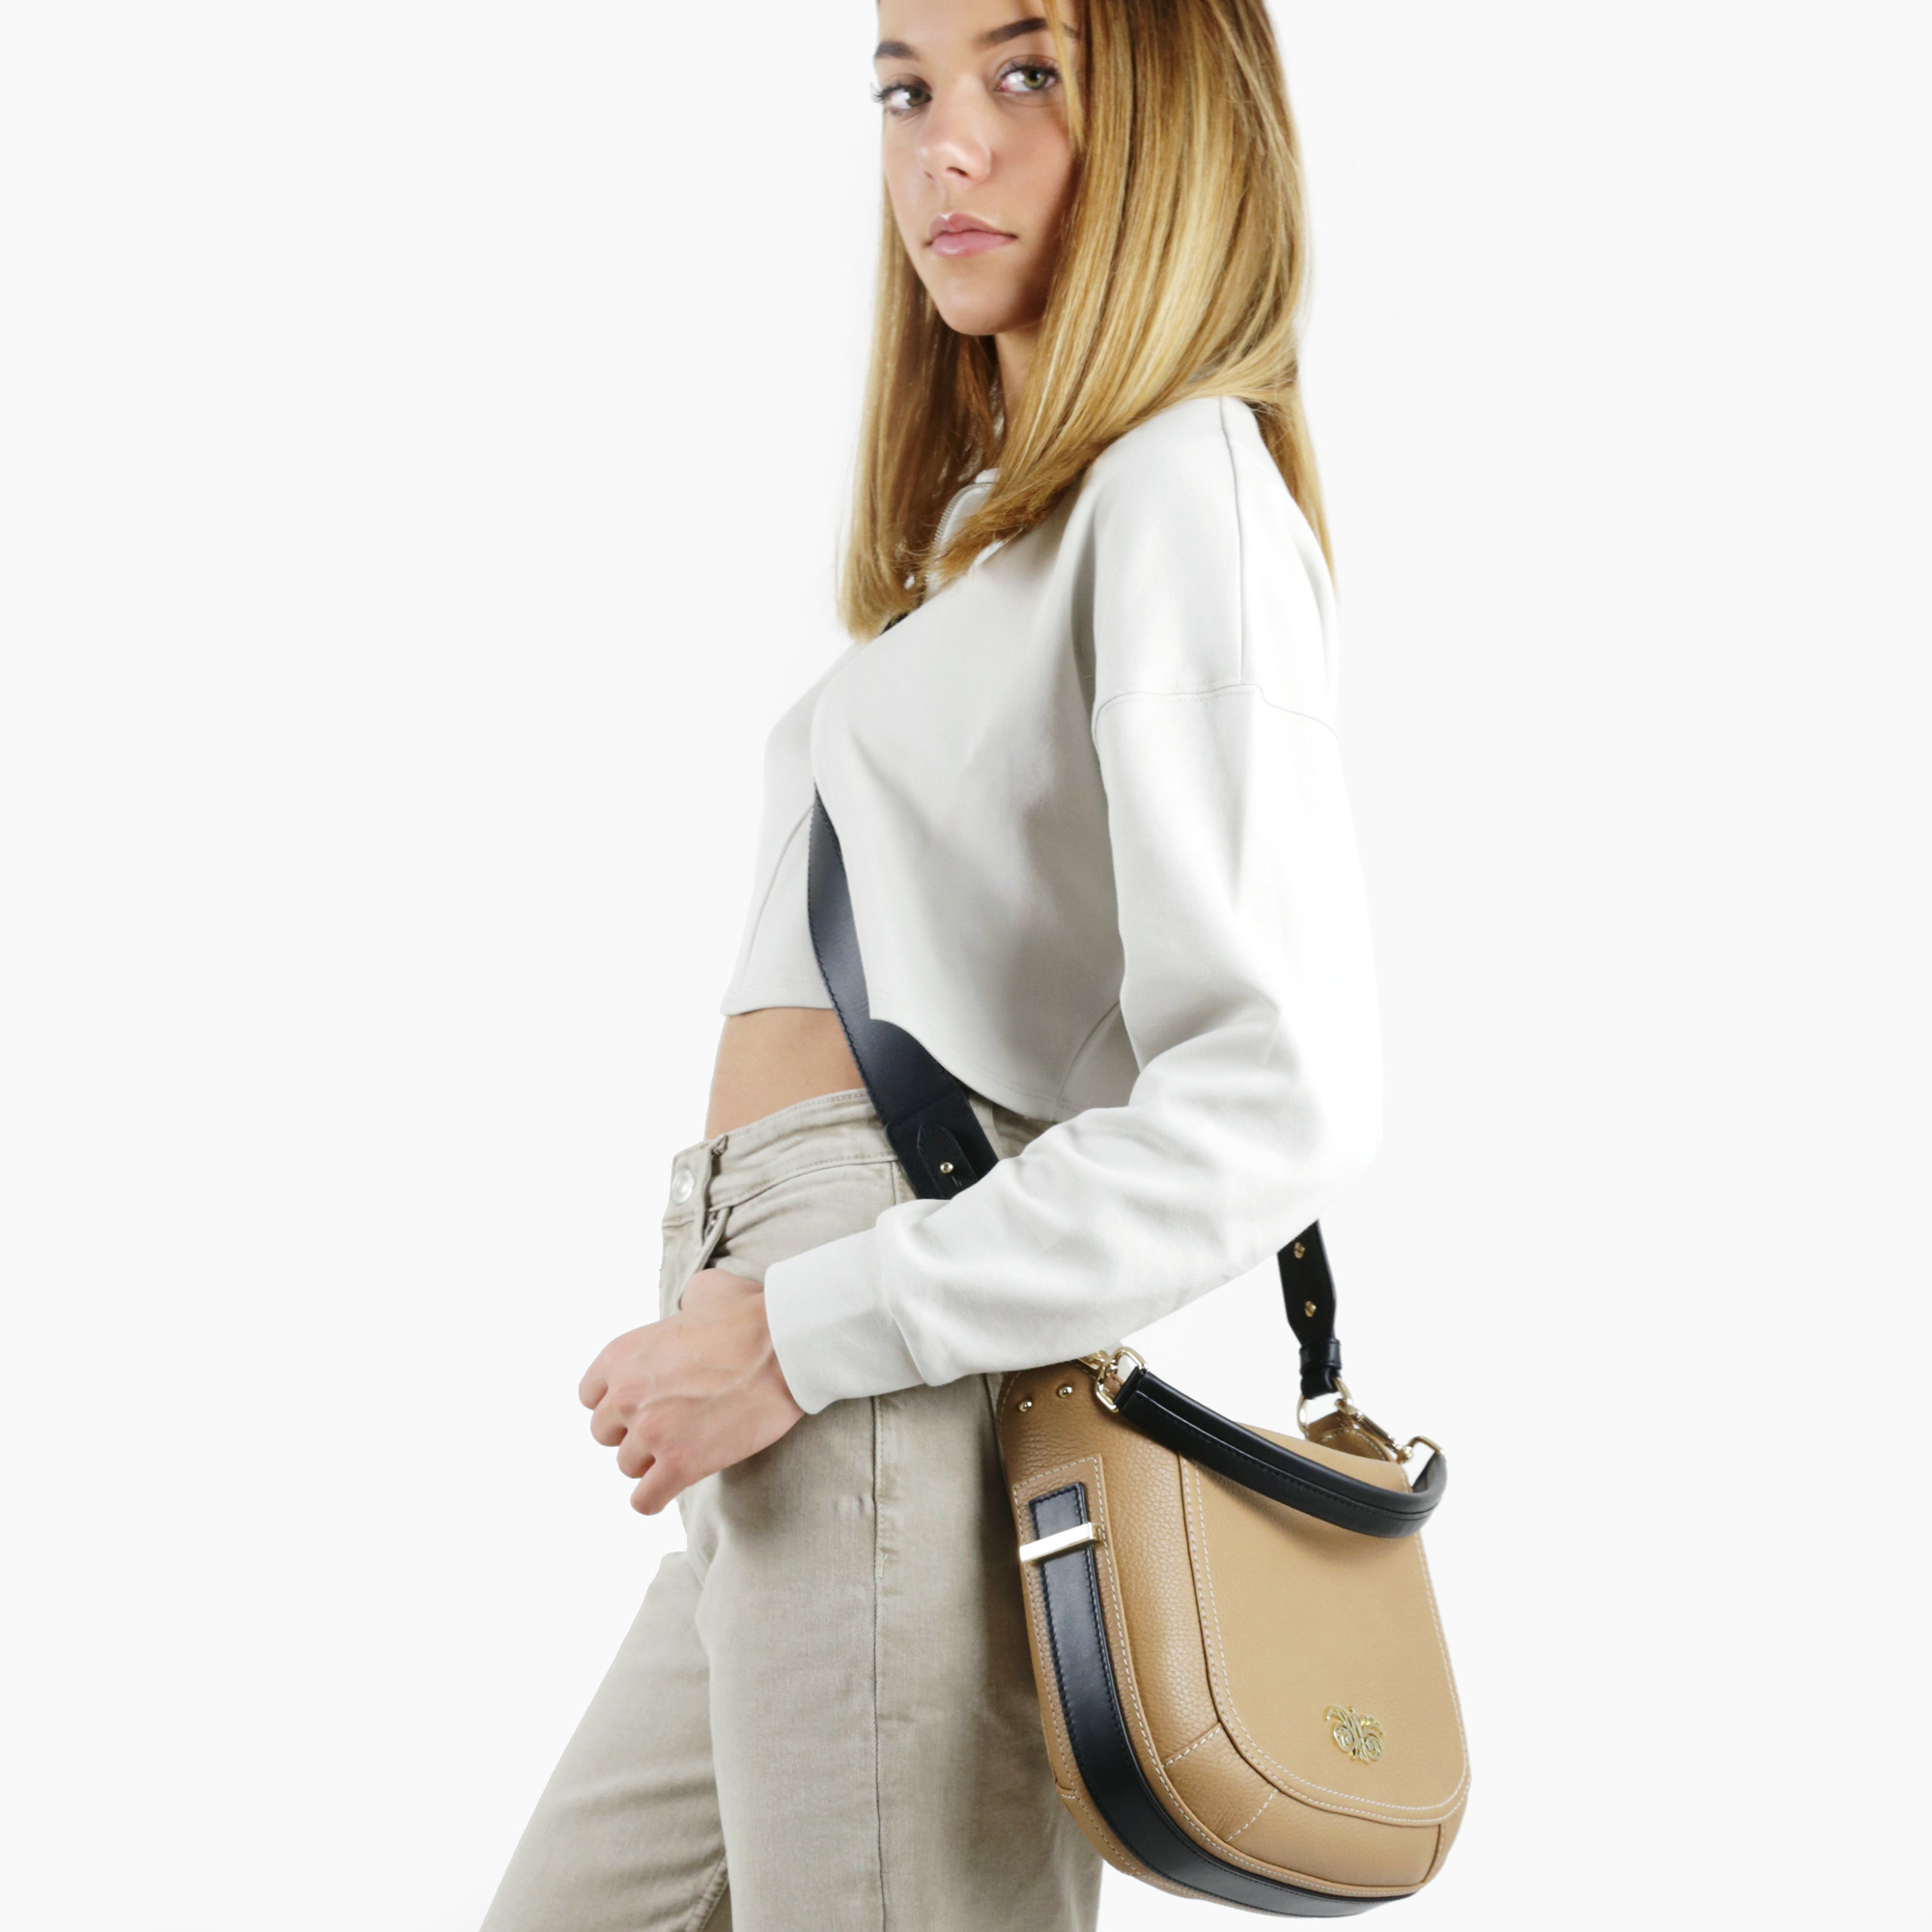 """Crossbody bag """"NEW FRENCHY"""" in grained leather, beige color, on a model"""